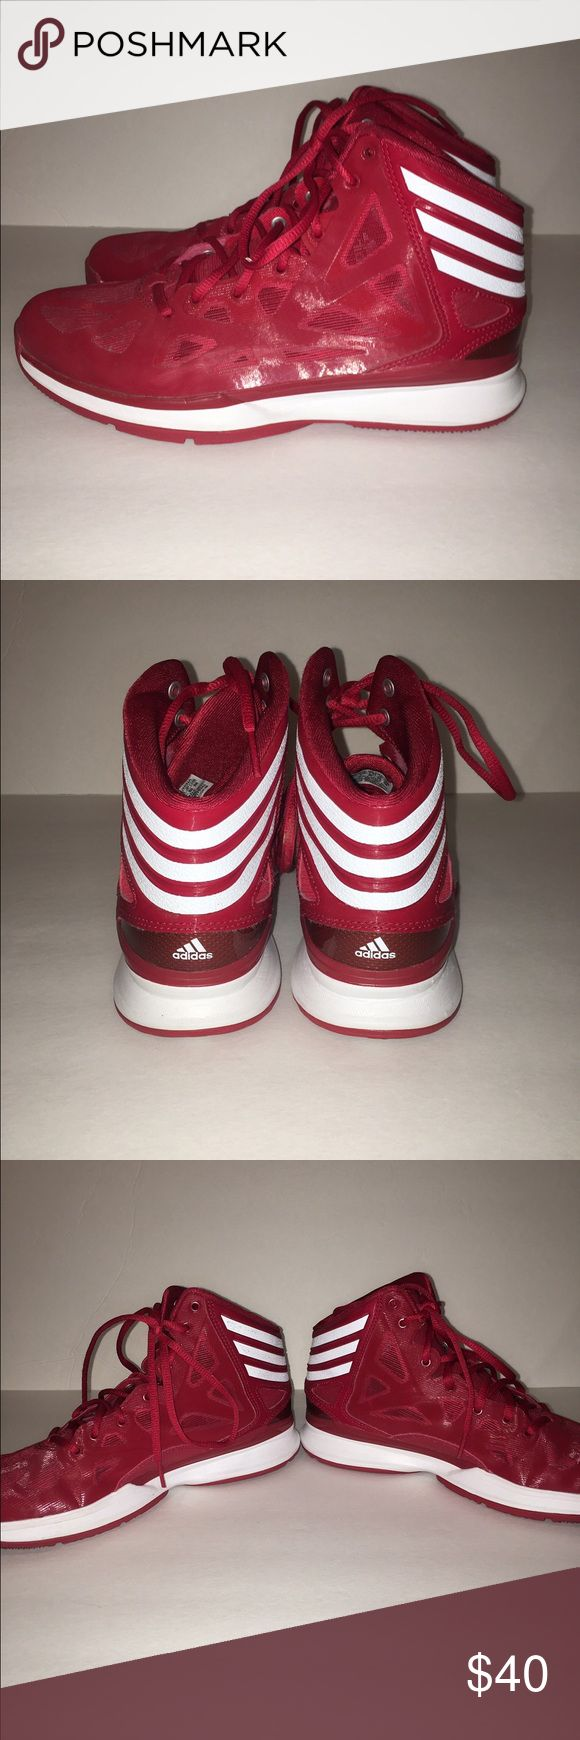 Adidas basketball shoes Men's 7.5 Adidas basketball shoes size 7.5 men's. Great condition. Worn one basketball season indoors. Red and white. Adidas Shoes Sneakers